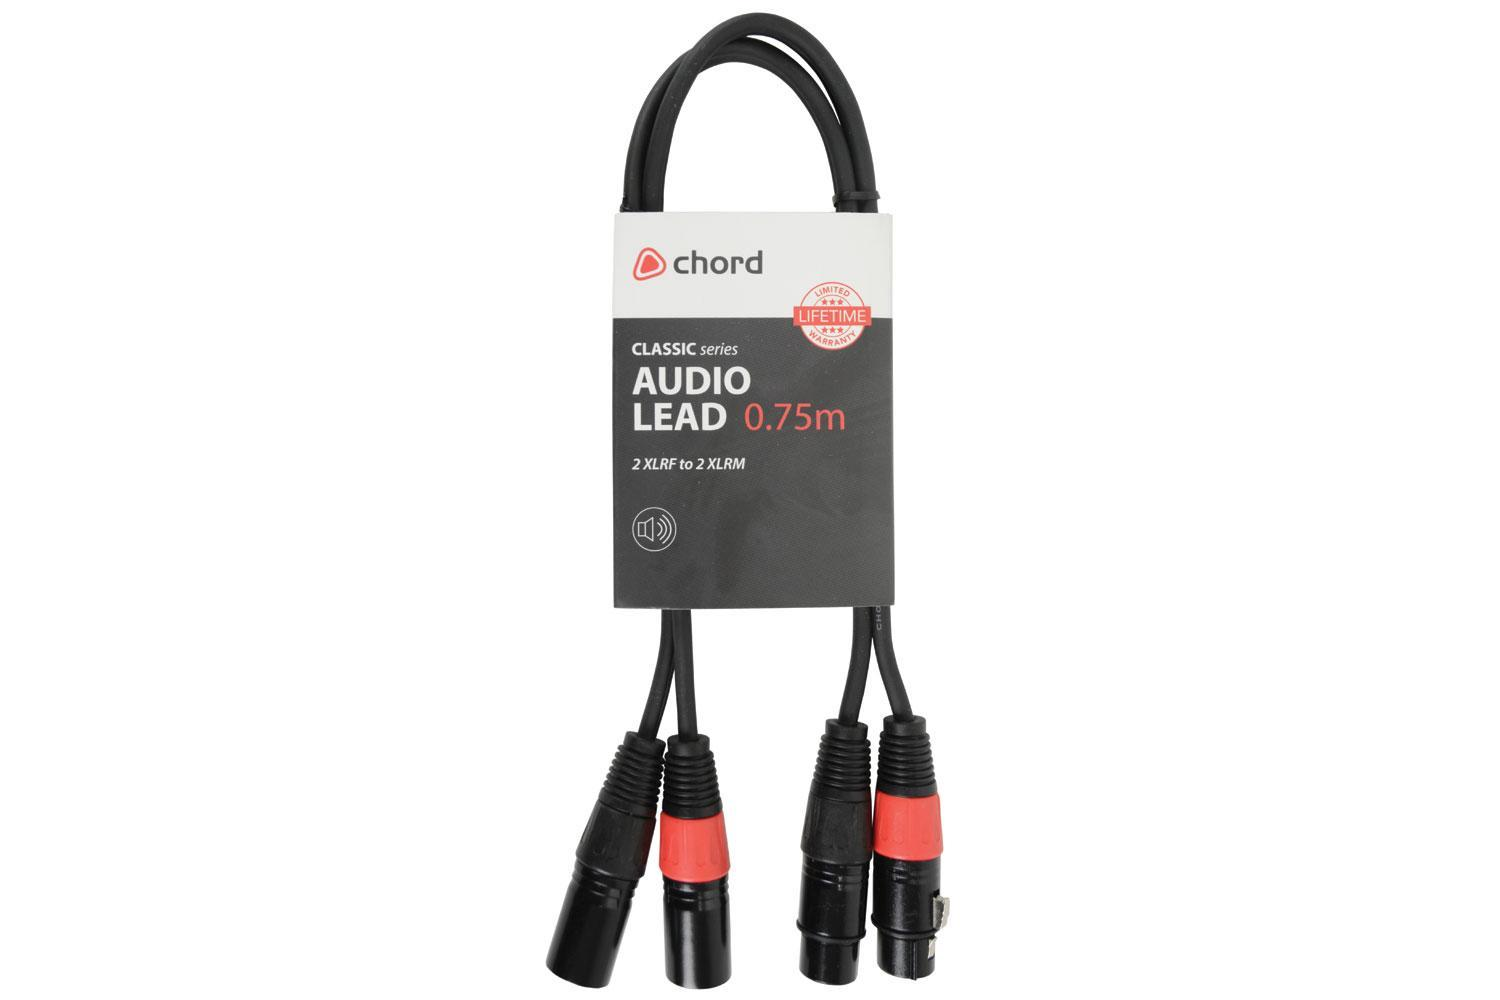 Classic Audio Leads 190028